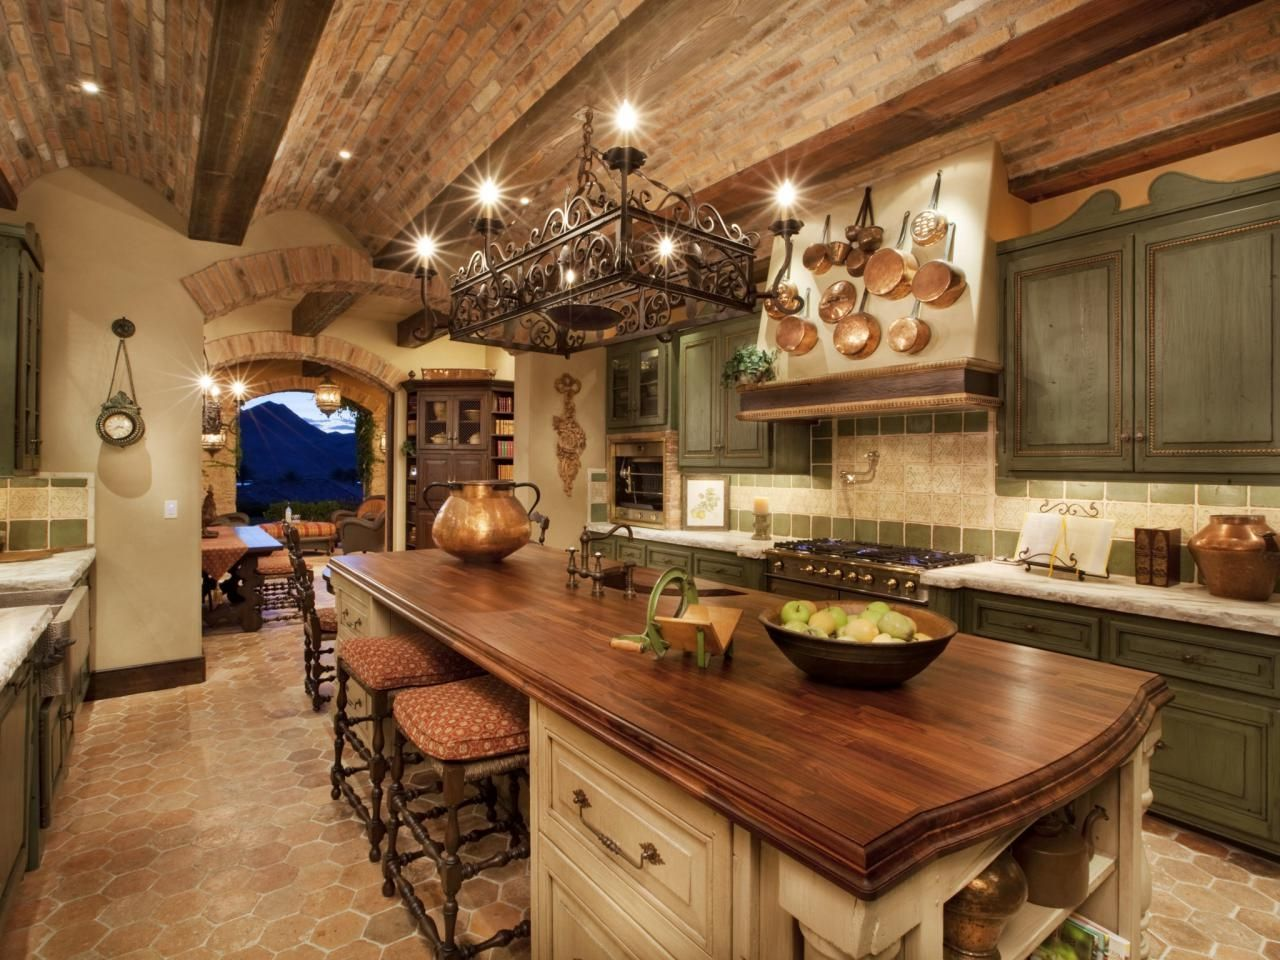 Stylish Italian Country Kitchen Decor For Cool Home Interiors